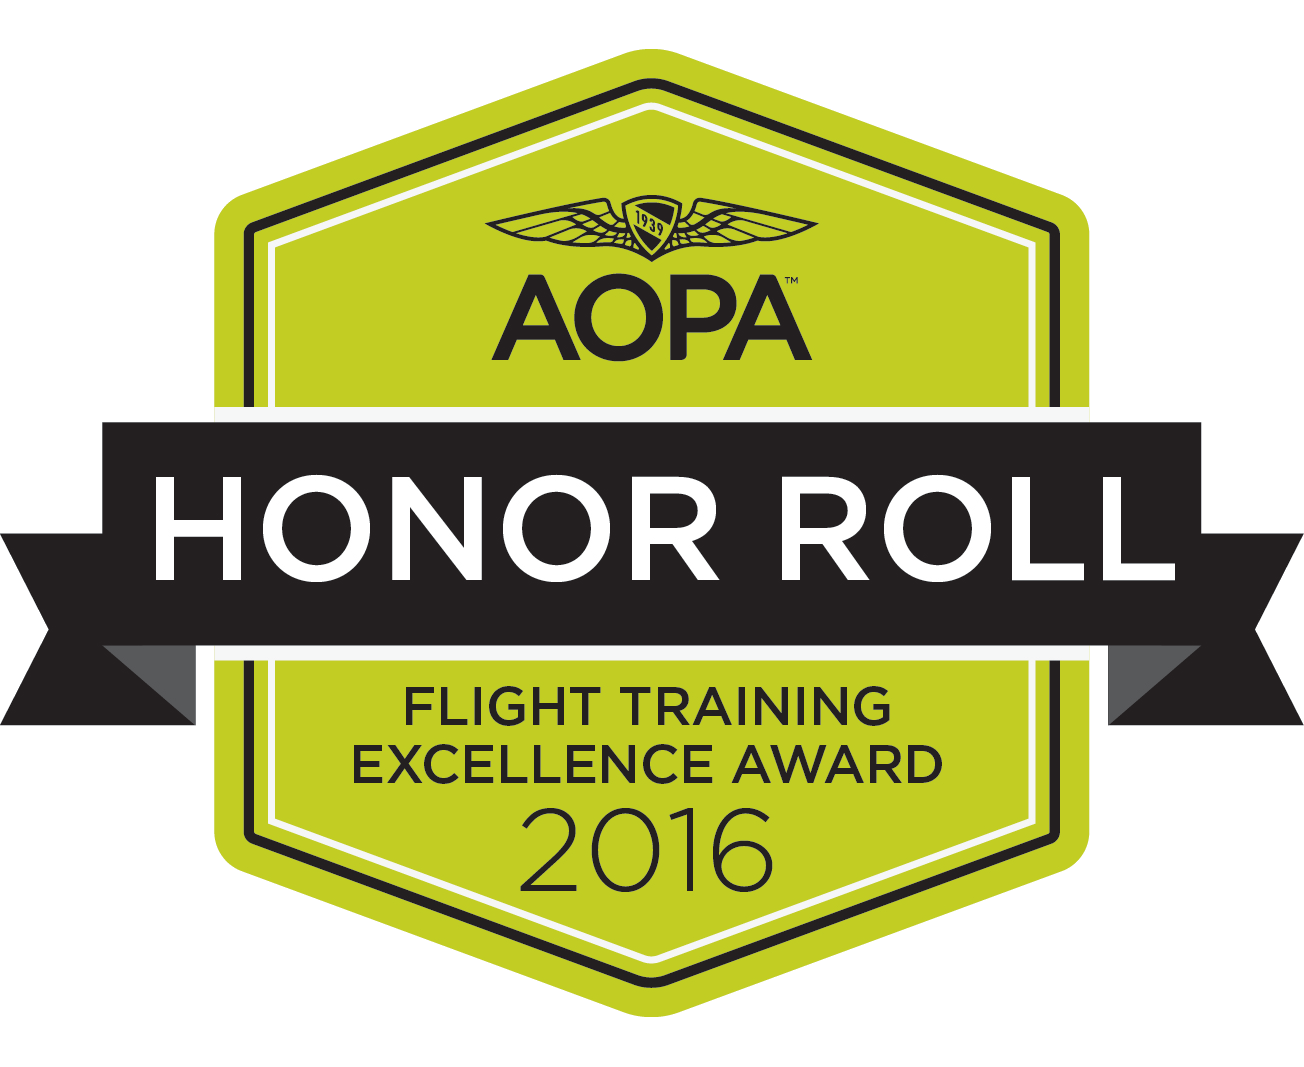 2016 AOPA Honor Roll Flight Training Excellence Award